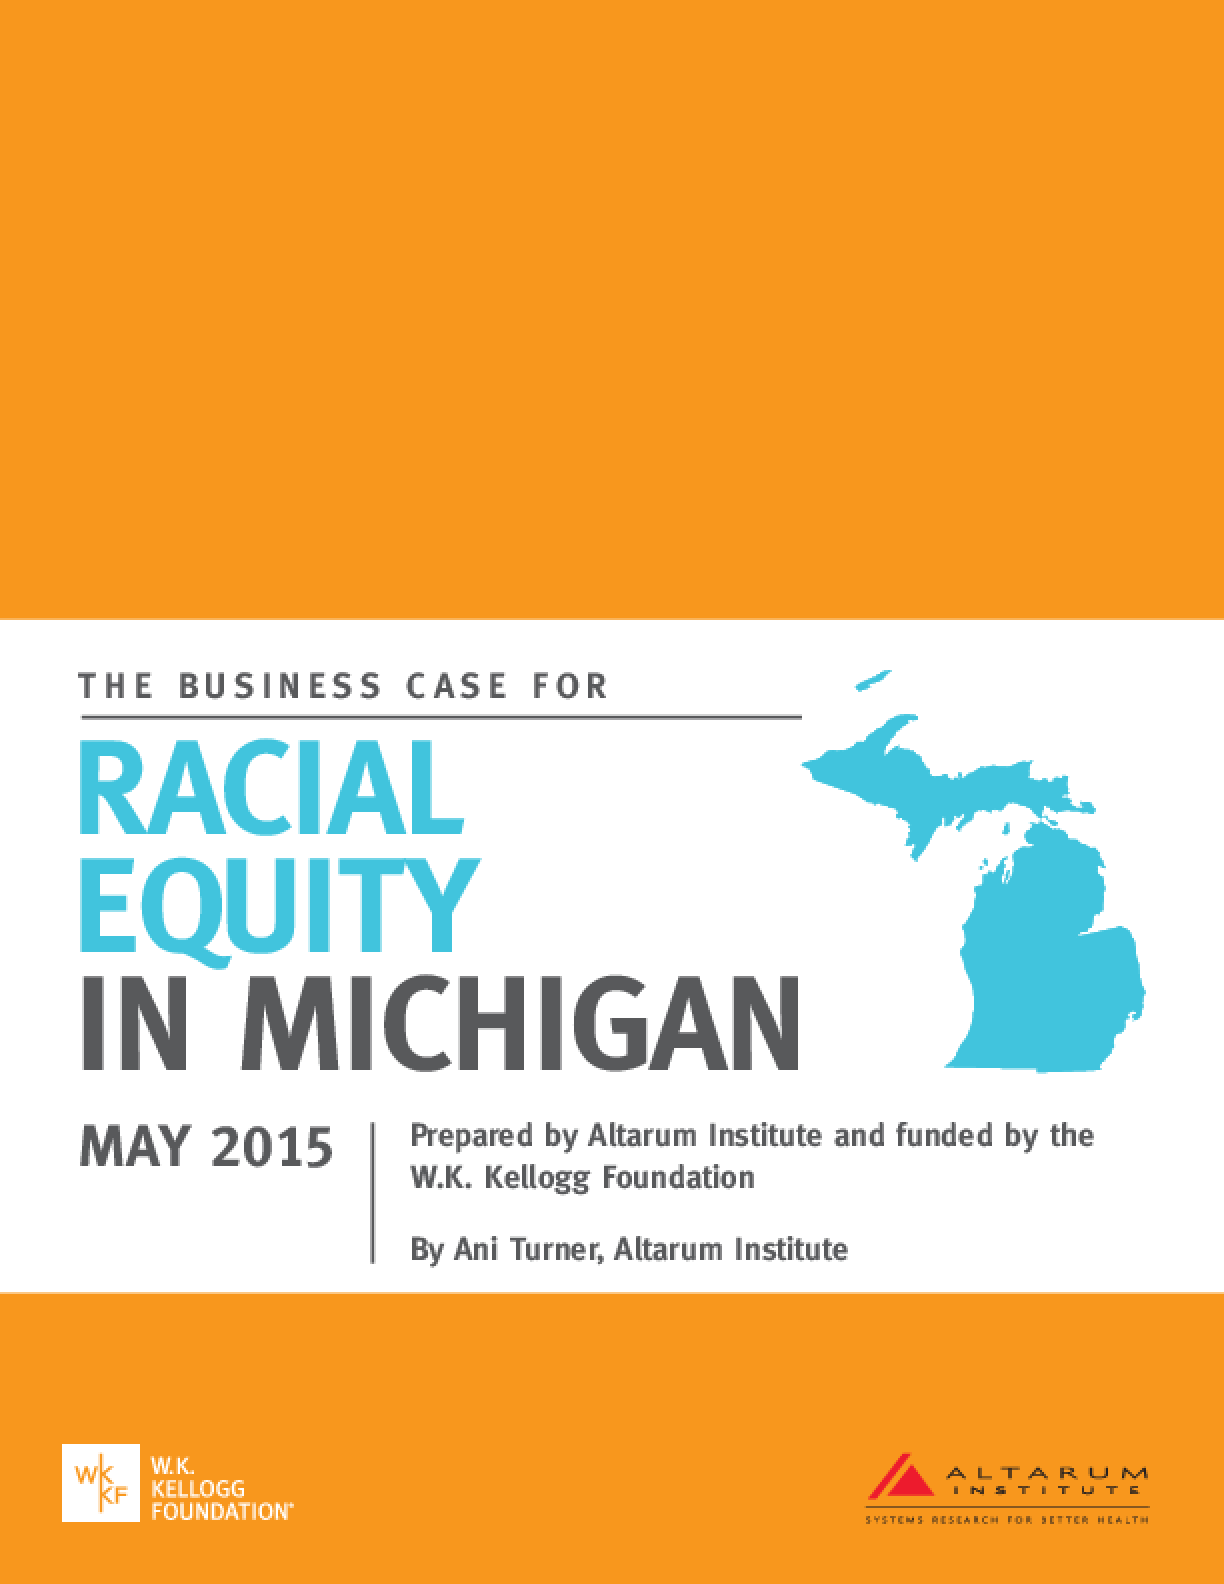 The Business Case for Racial Equity in Michigan